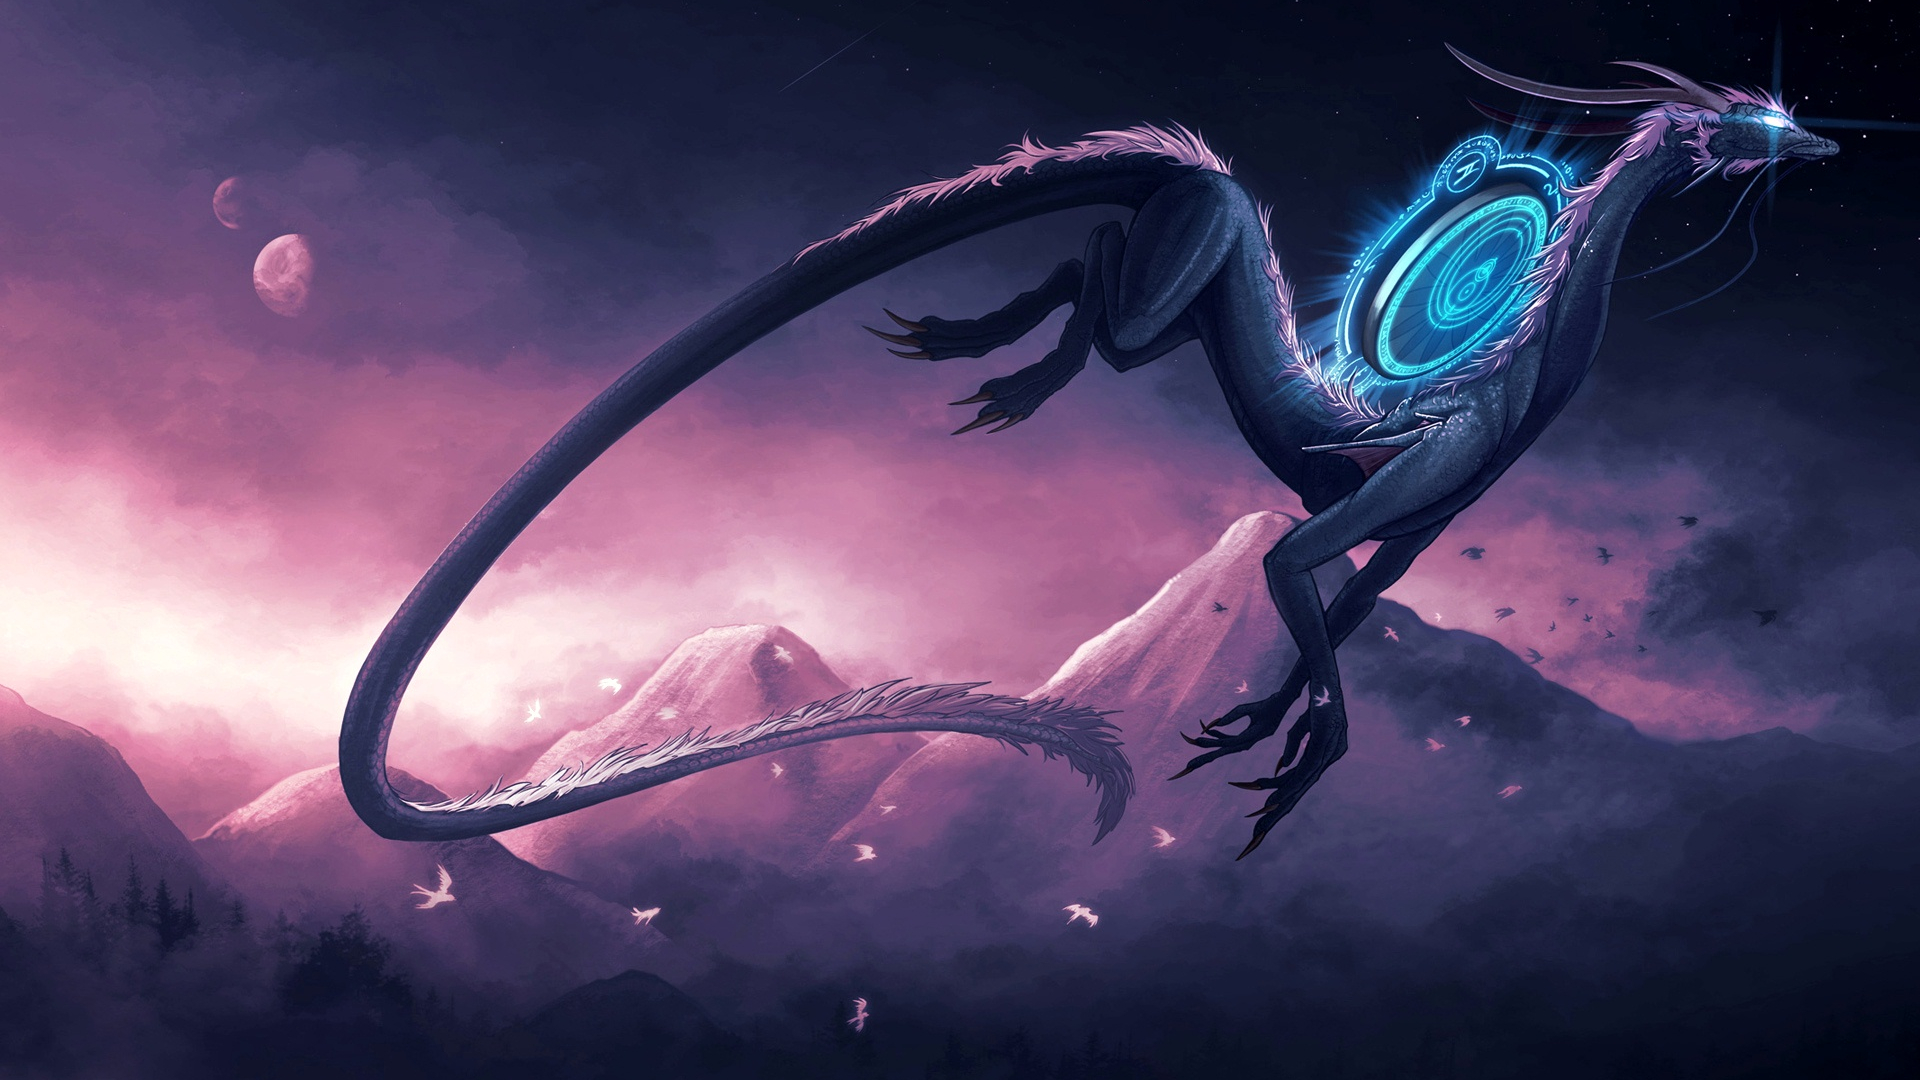 20 free and stunning dragon wallpaper collection - HD 1920×1080